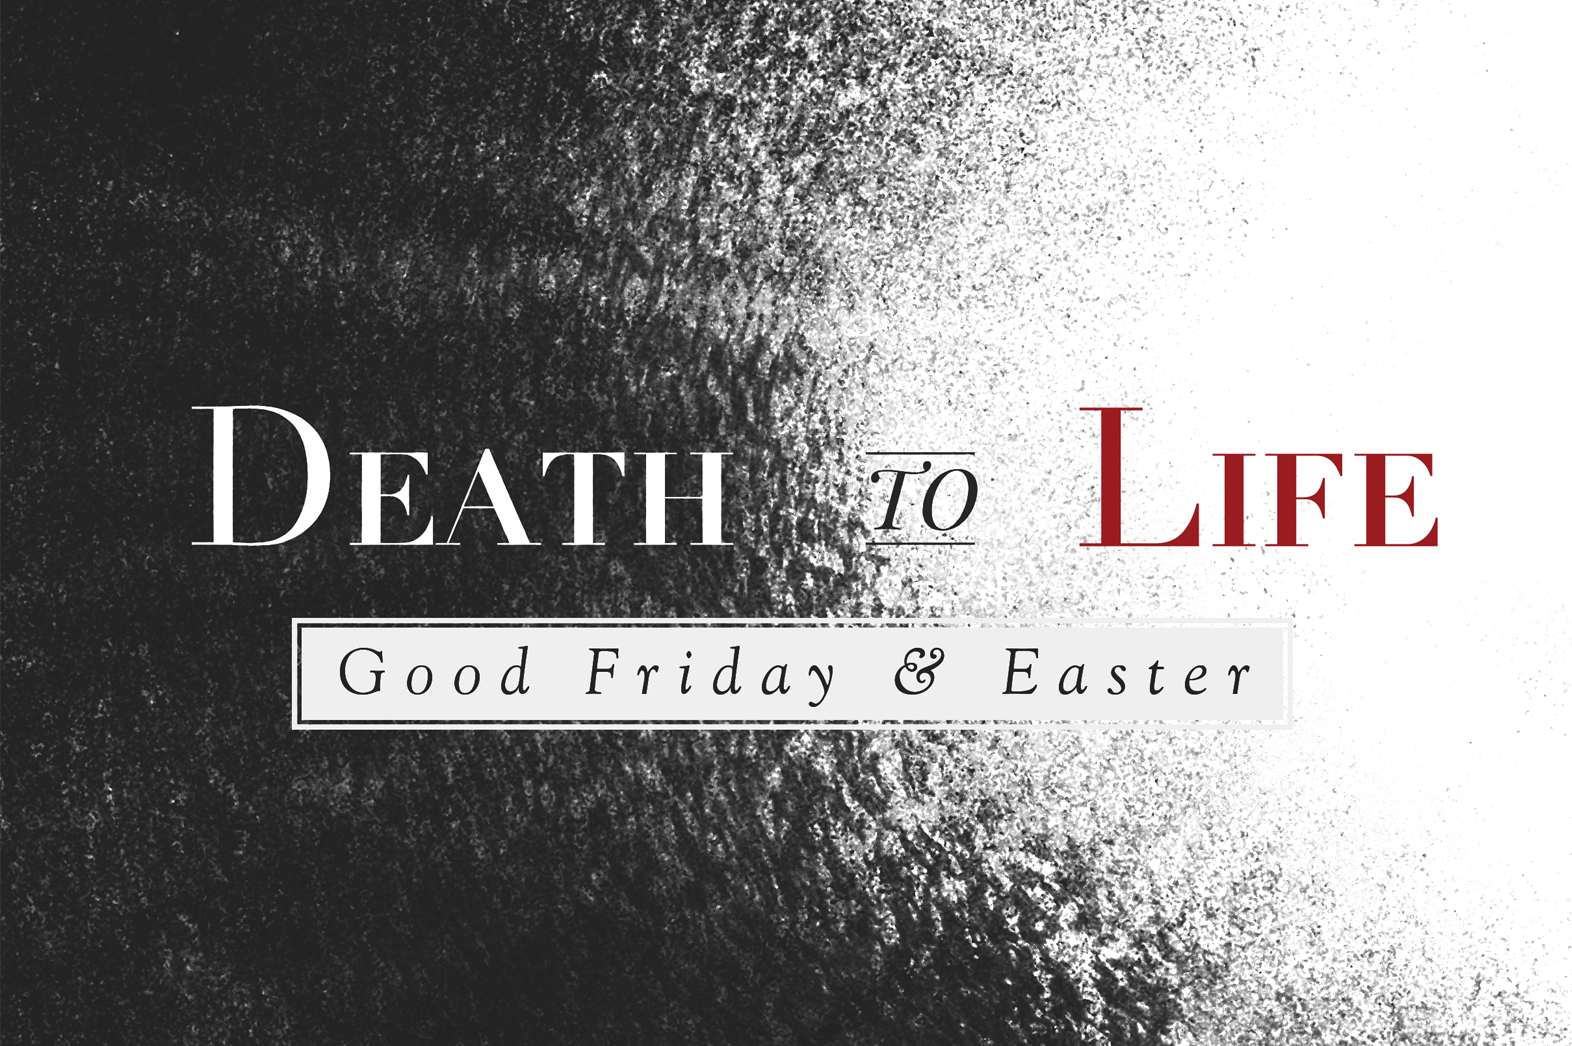 Sermons from our Good Friday and Easter services.